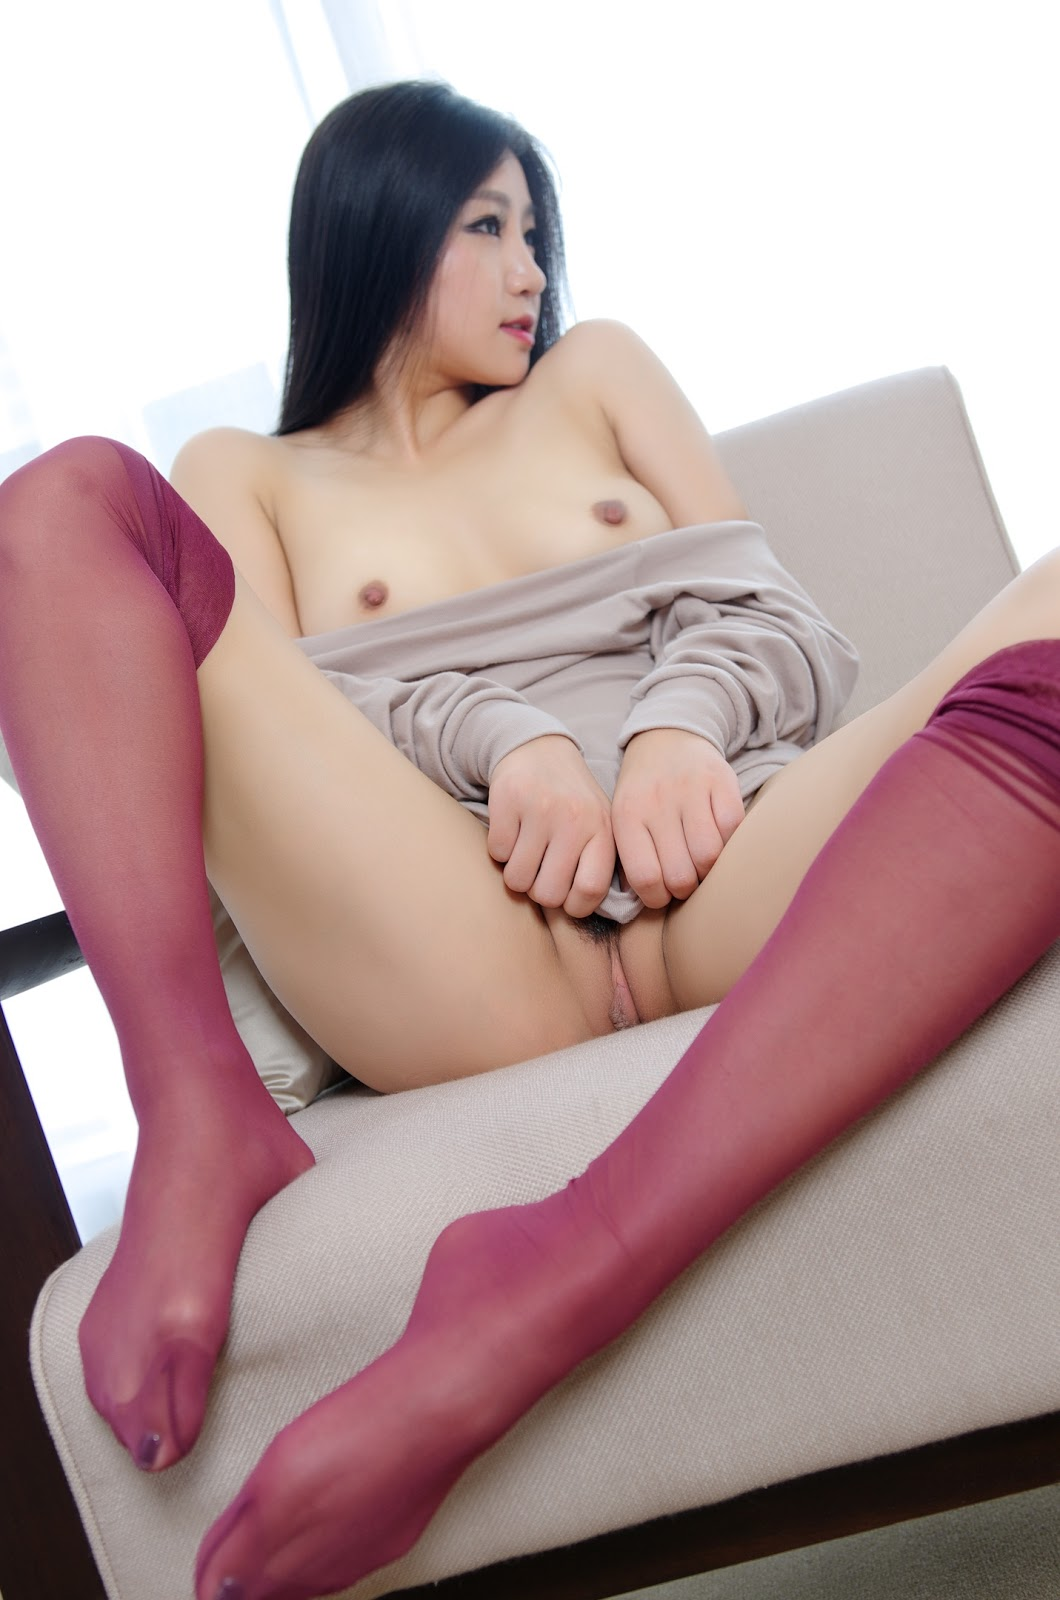 ChzF5NuZxQY - Cute nude asian model show sexy pussy 2020